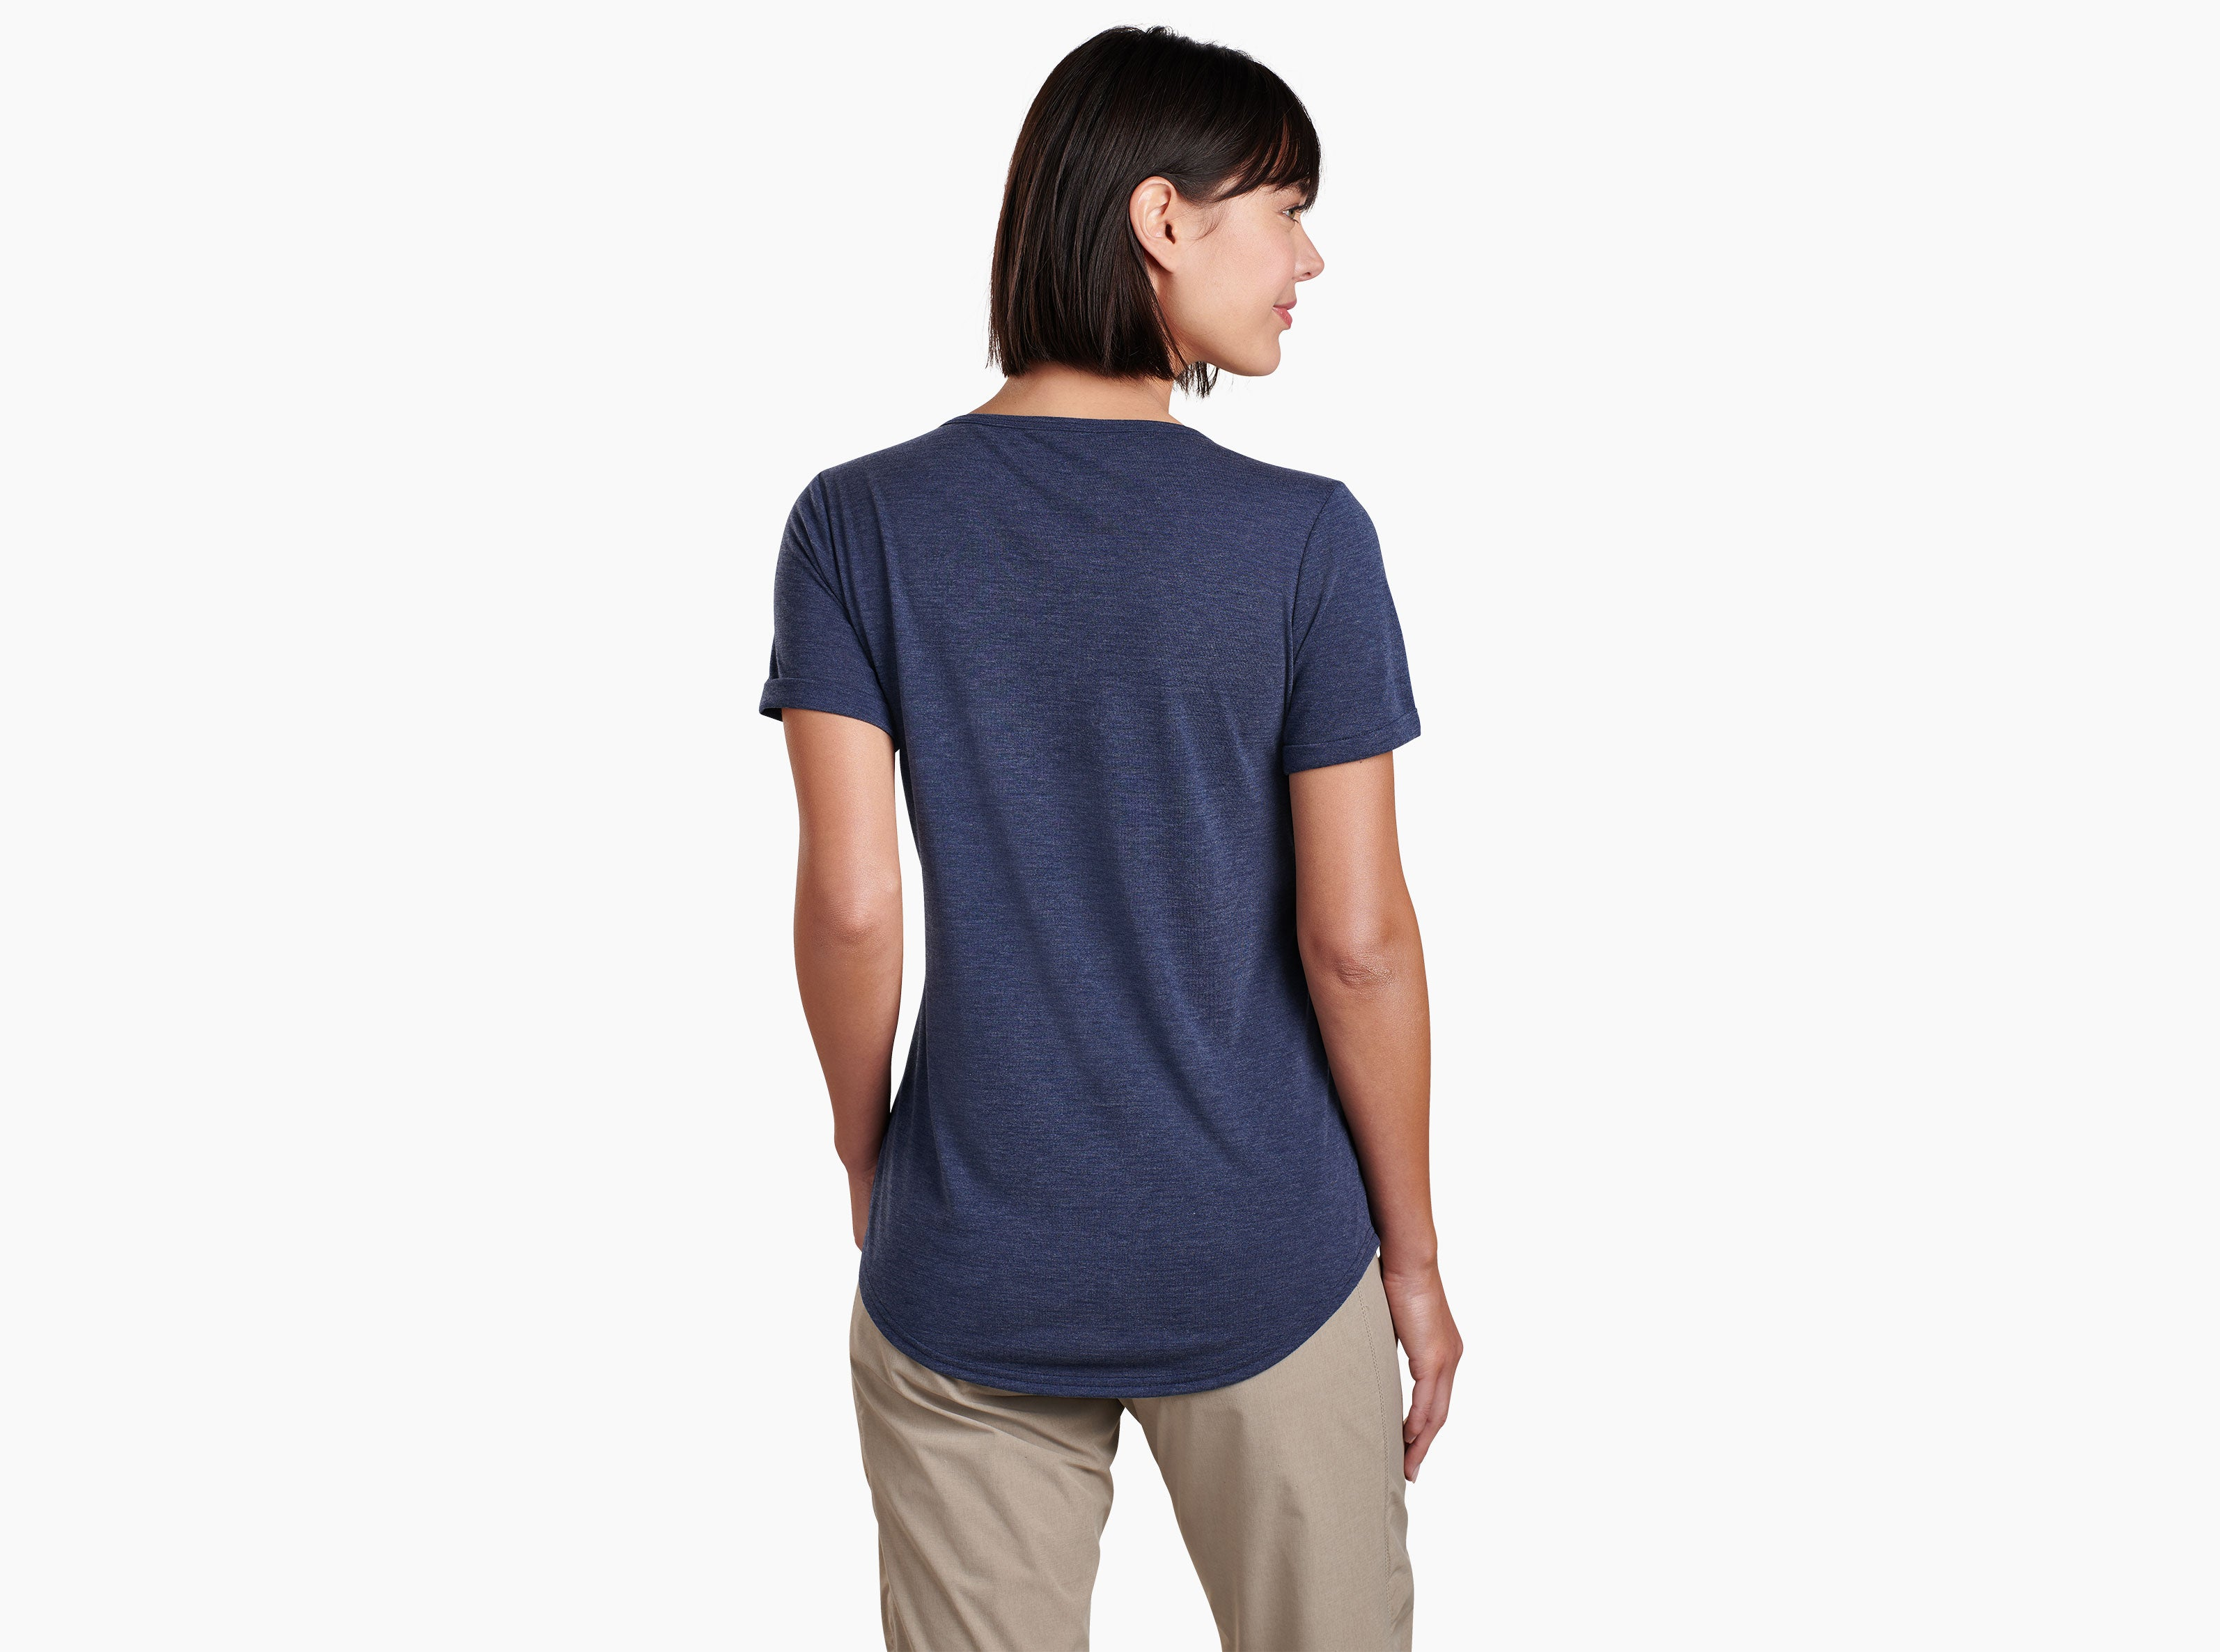 Kuhl Inara Short Sleeved Tee for Ladies in Abyss